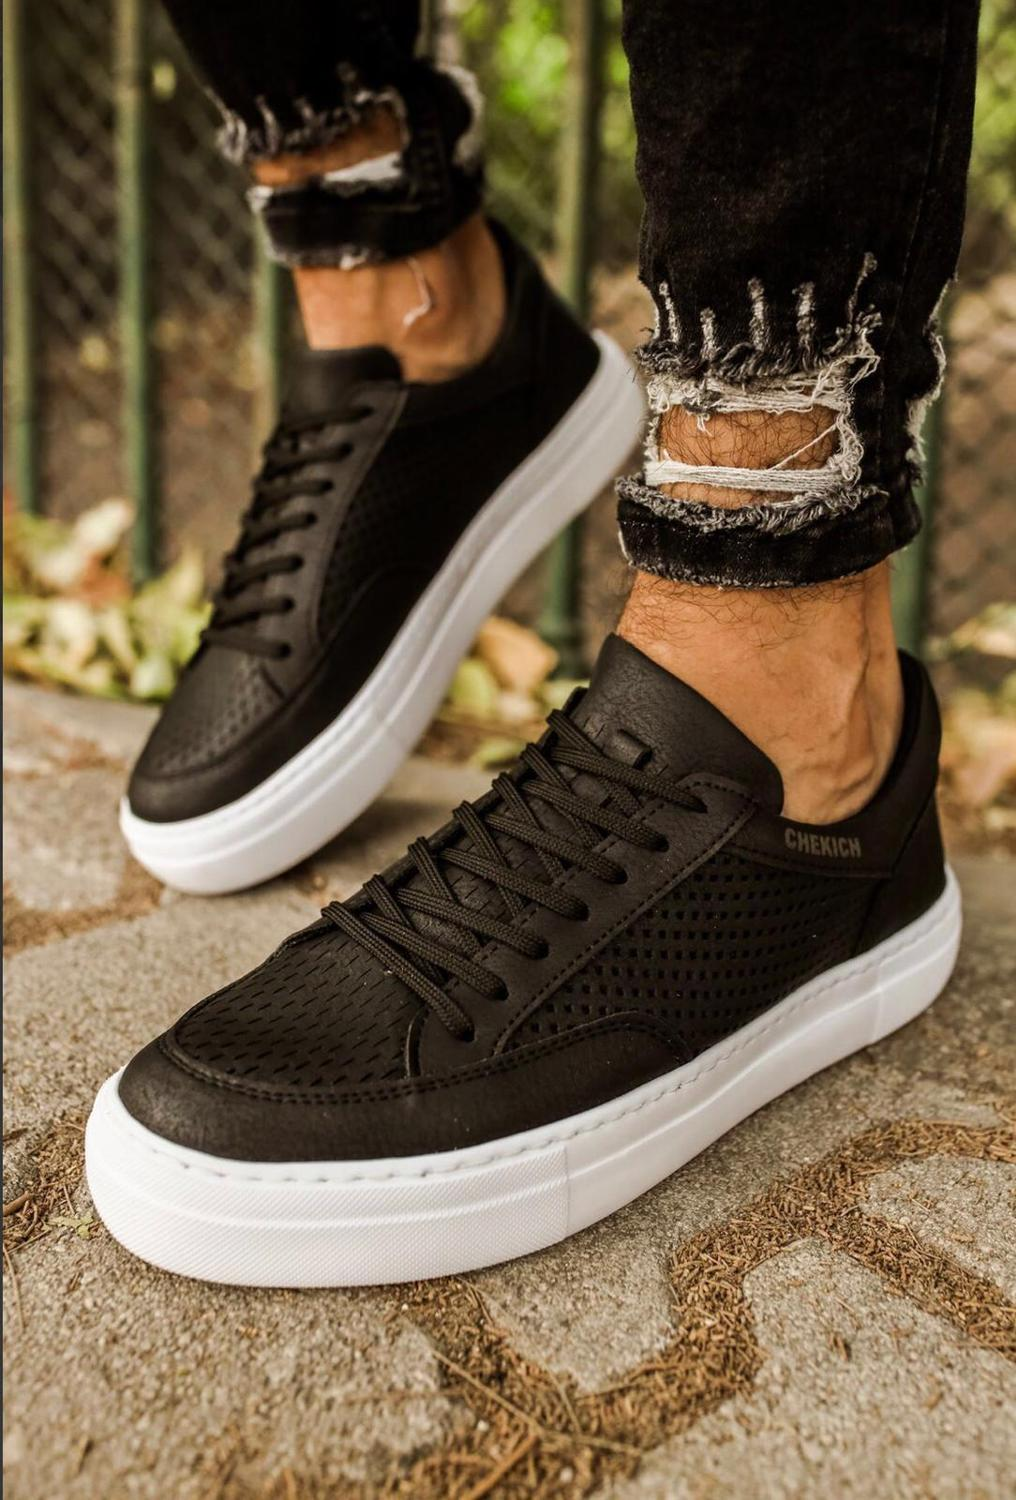 2021 men's shoes casual comfortable sports shoes classic new season green black brown breathable shoes